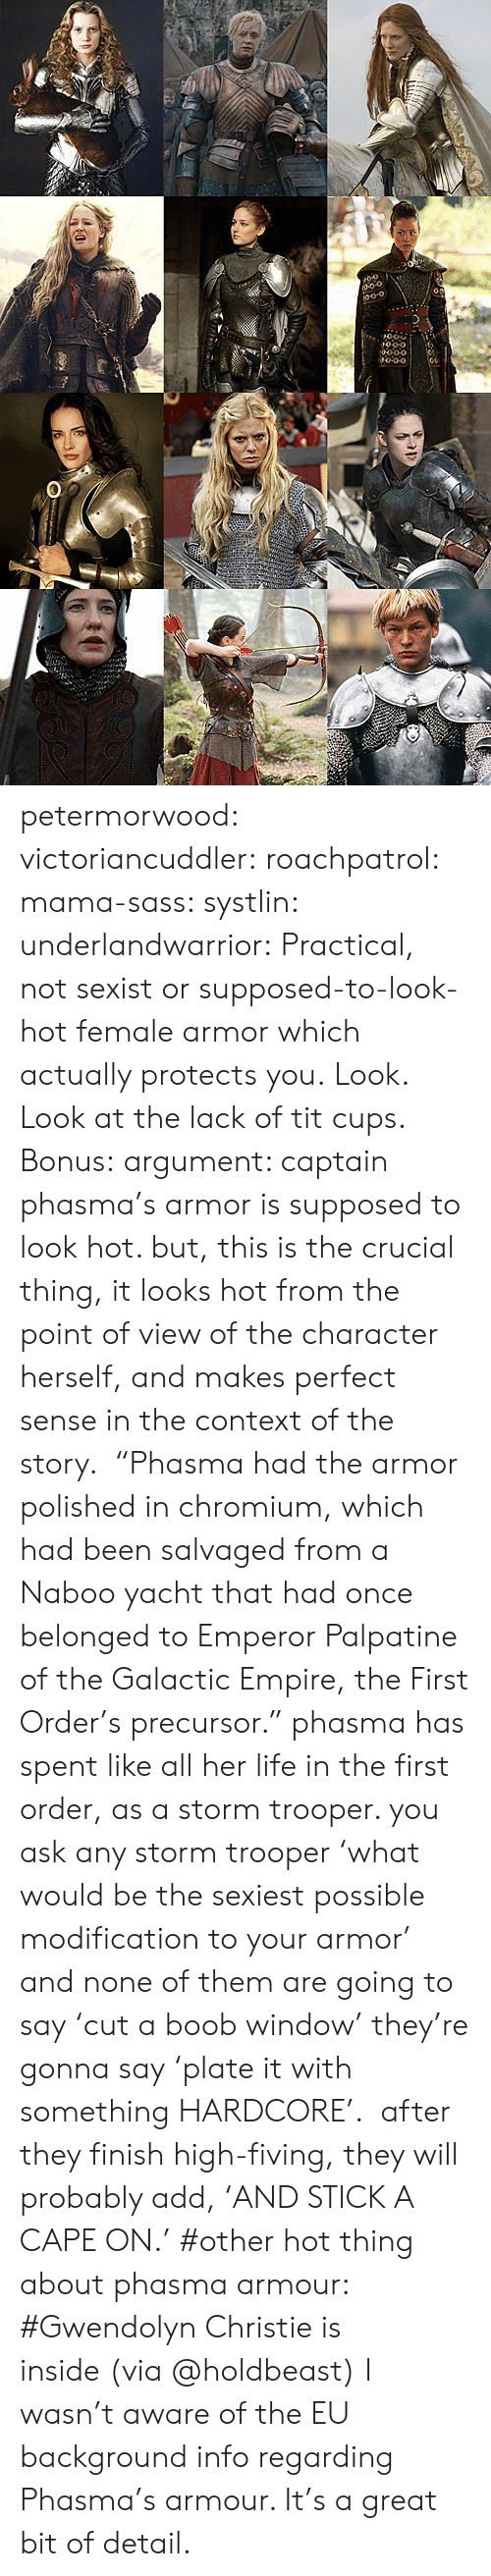 "Yacht: 0-o  O0-o petermorwood:  victoriancuddler:  roachpatrol:  mama-sass:  systlin:  underlandwarrior:  Practical, not sexist or supposed-to-look-hot female armor which actually protects you.  Look.  Look at the lack of tit cups.   Bonus:  argument: captain phasma's armor is supposed to look hot. but, this is the crucial thing, it looks hot from the point of view of the character herself, and makes perfect sense in the context of the story.  ""Phasma had the armor polished in chromium, which had been salvaged from a Naboo yacht that had once belonged to Emperor Palpatine of the Galactic Empire, the First Order's precursor."" phasma has spent like all her life in the first order, as a storm trooper. you ask any storm trooper 'what would be the sexiest possible modification to your armor' and none of them are going to say 'cut a boob window' they're gonna say 'plate it with something HARDCORE'.  after they finish high-fiving, they will probably add, 'AND STICK A CAPE ON.'    #other hot thing about phasma armour: #Gwendolyn Christie is inside (via @holdbeast)  I wasn't aware of the EU background info regarding Phasma's armour. It's a great bit of detail."